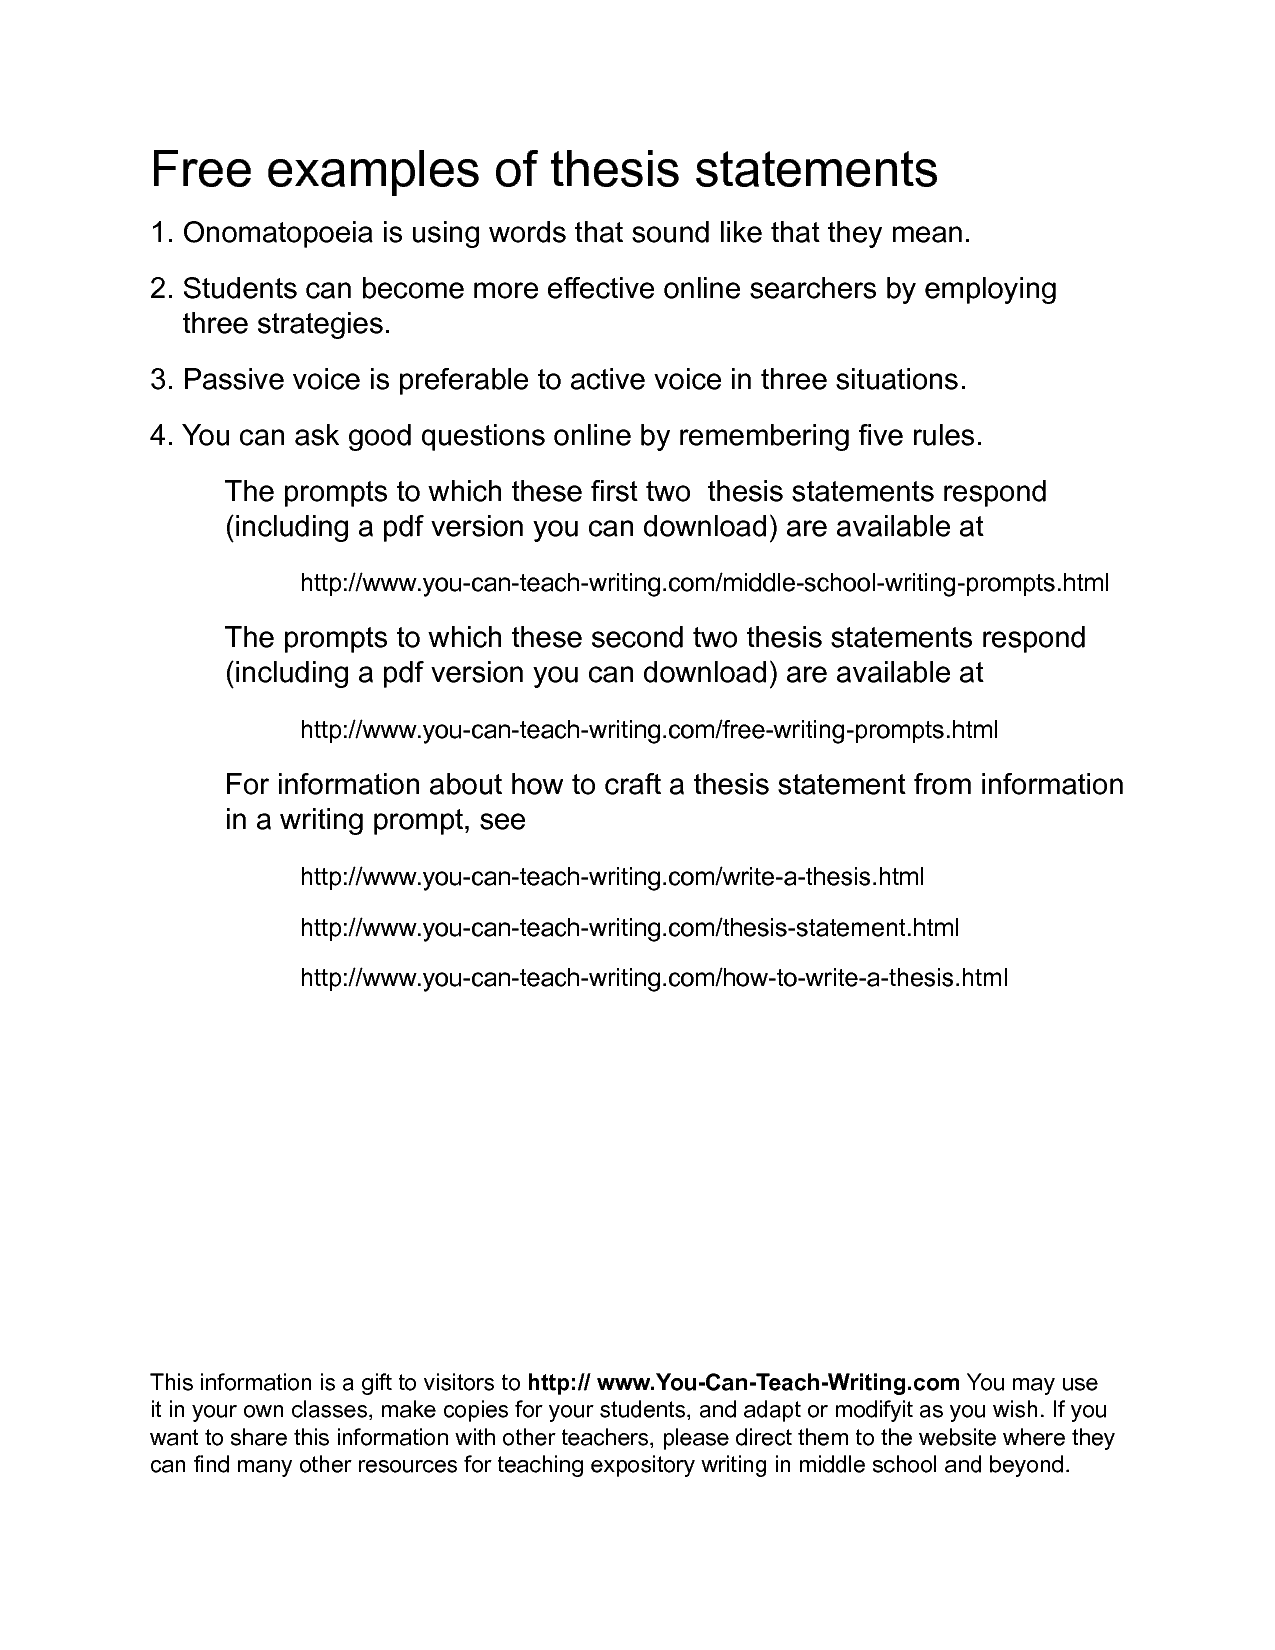 002 Childhood Obesity Research Paper Thesis Fantastic Statement Full